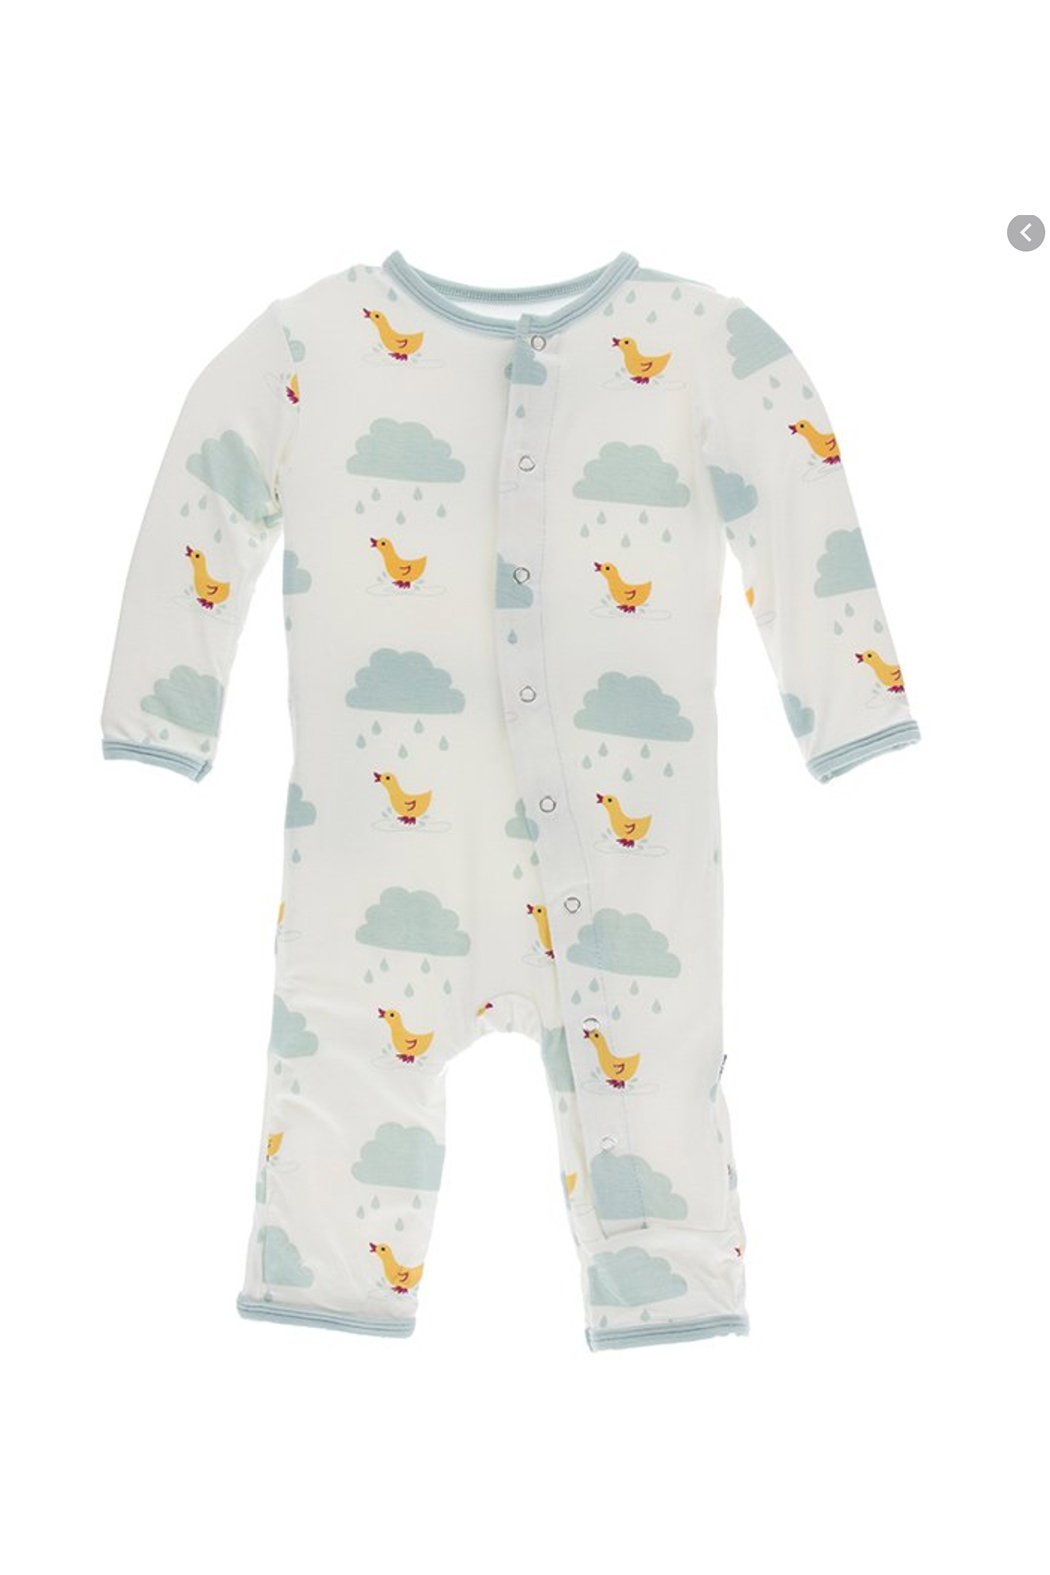 Kickee Pants Basic Coverall with Zipper in Puddle Duck - Front Full Image